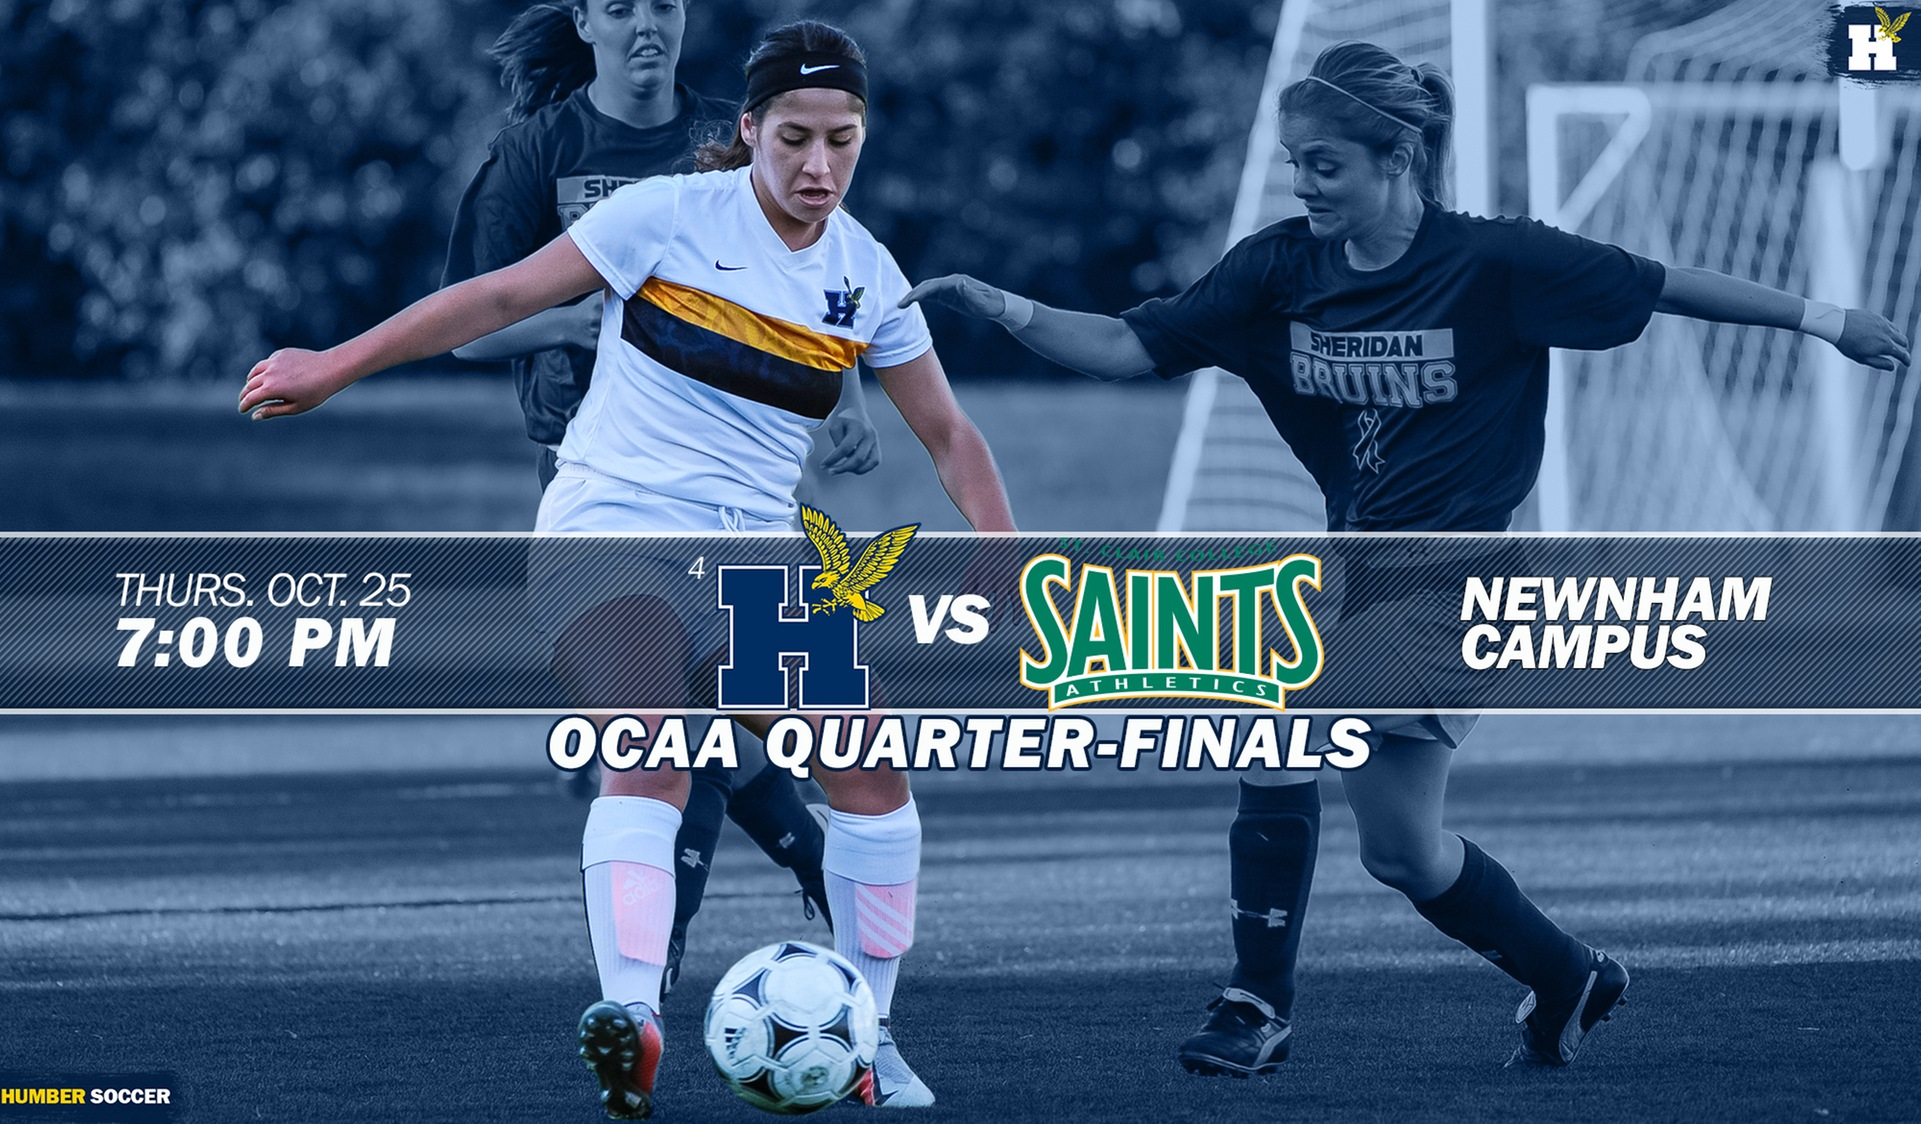 No. 4 WOMEN'S SOCCER SET TO FACE ST. CLAIR IN OCAA QUARTER-FINALS